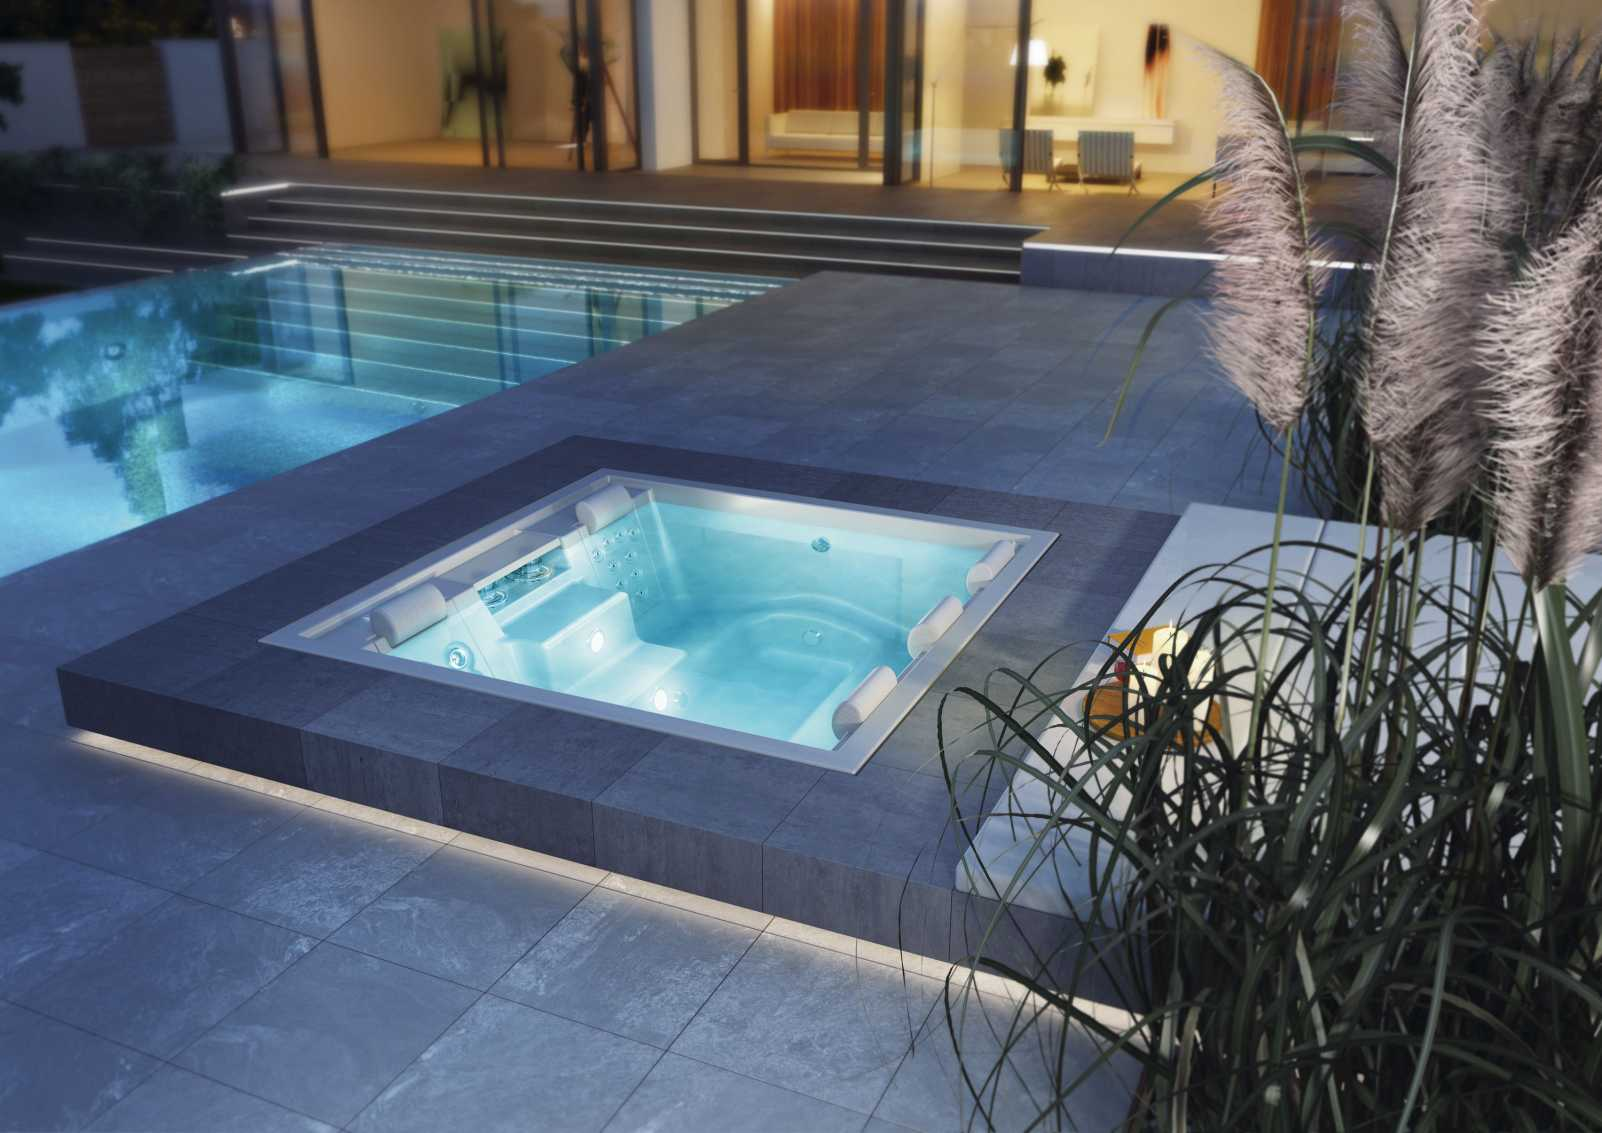 Whirlpool outdoor eingelassen  Pretty Outdoor Whirlpools Photos - Bathroom and Shower Ideas ...